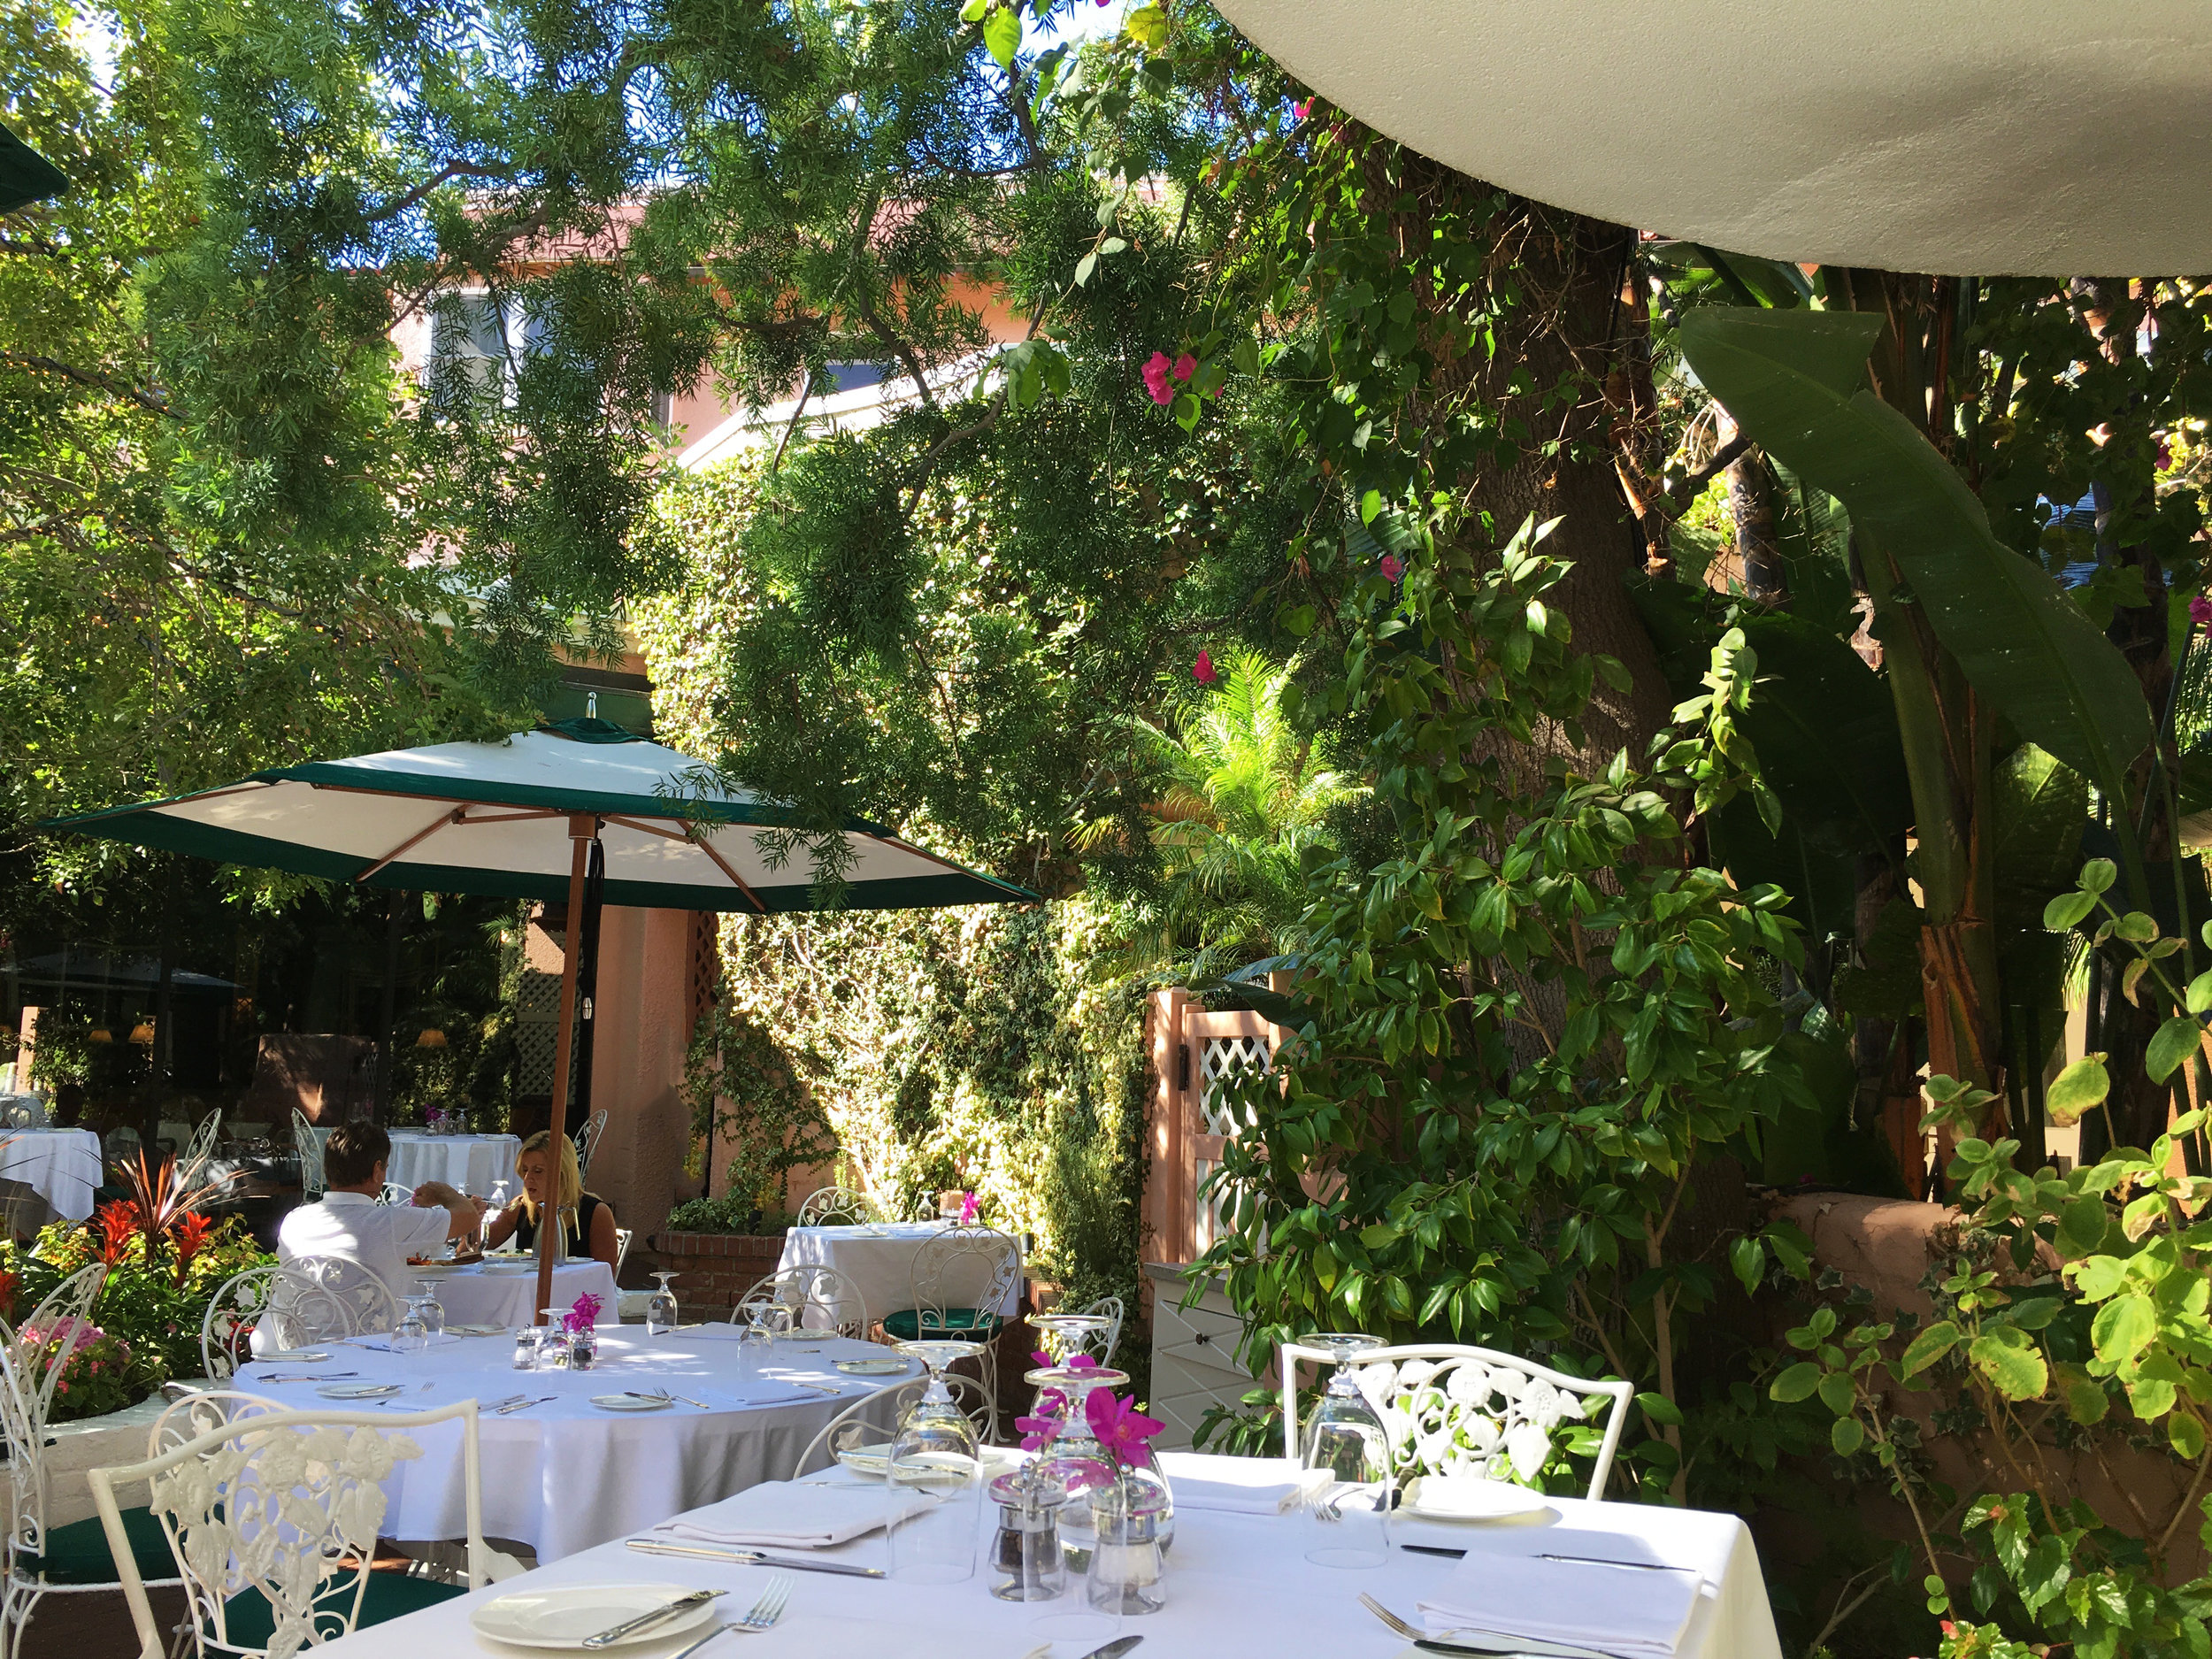 Spend the day lunching and brunching in the Beverly Hills Hotel Polo Lounge garden.